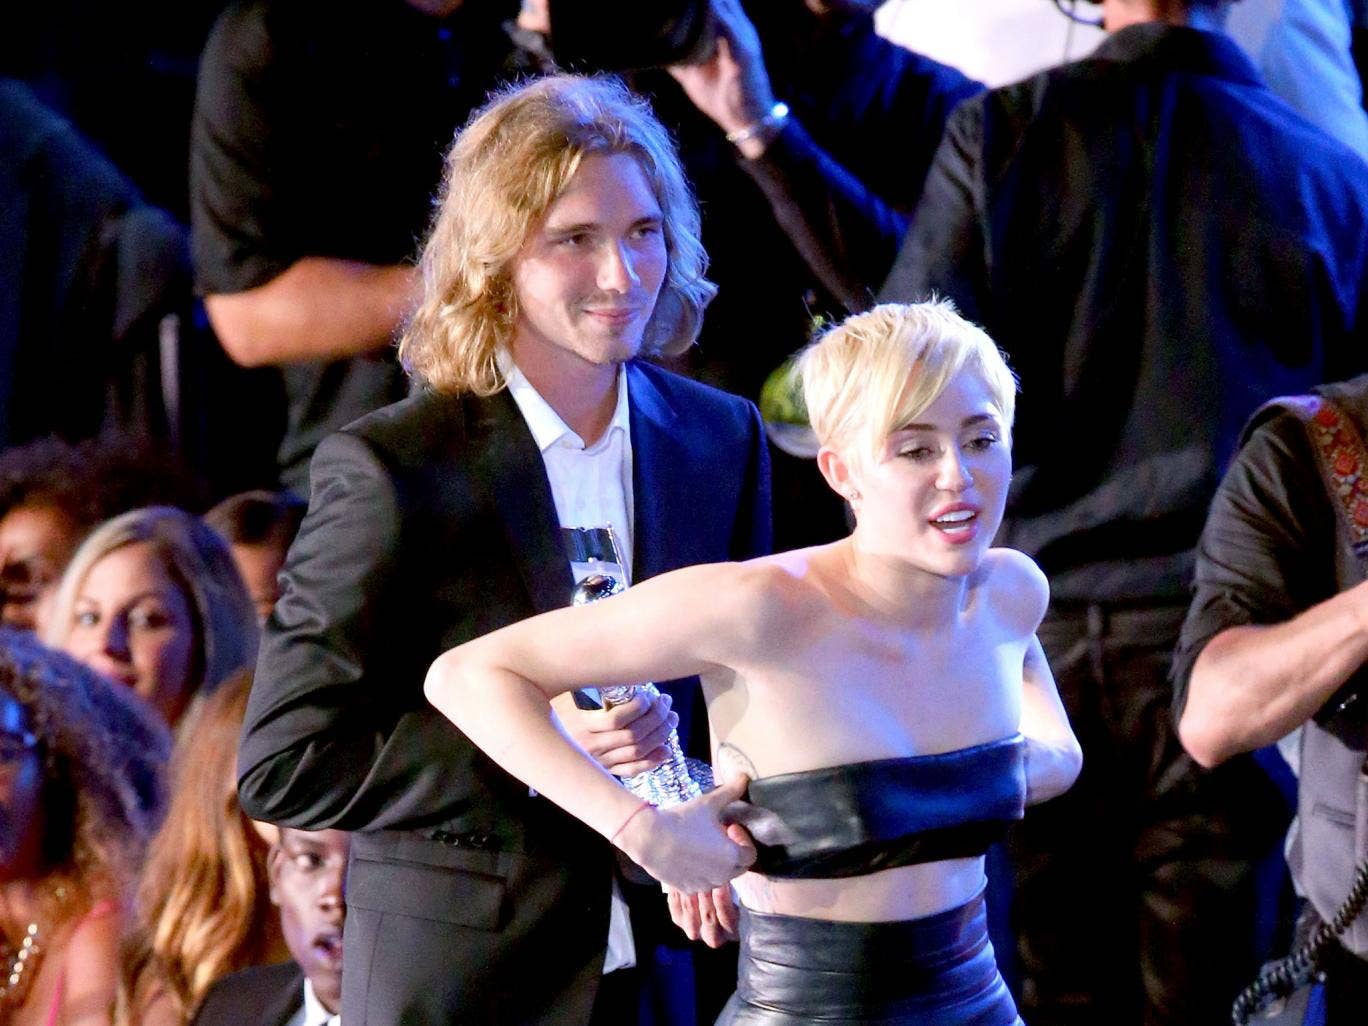 Jesse Helt with Miley Cyrus at the MTV Video Music Awards